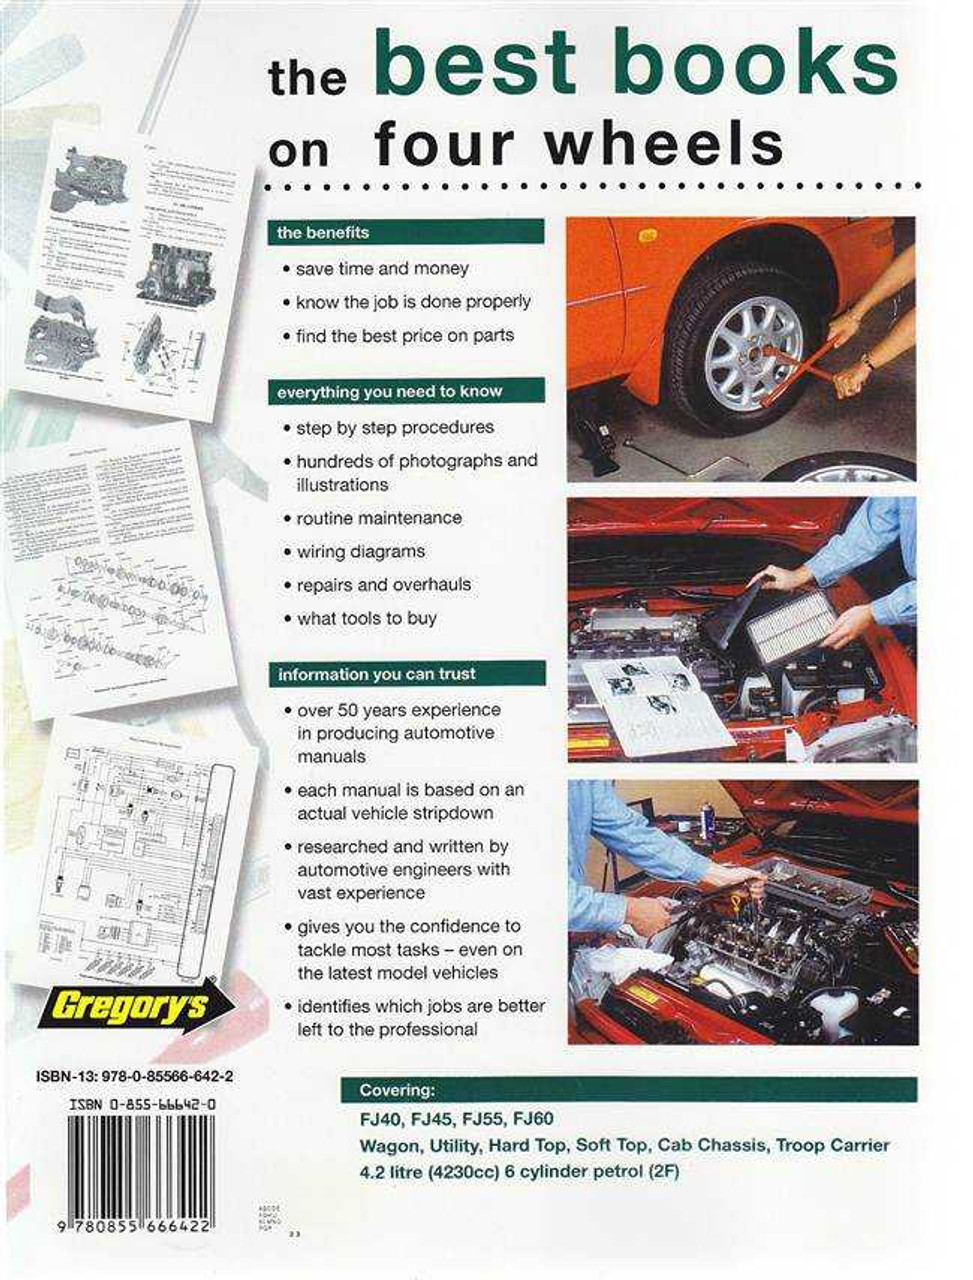 toyota land cruiser fj series fj40, fj45, fj55, fj60 1975 - 1984 workshop  manual